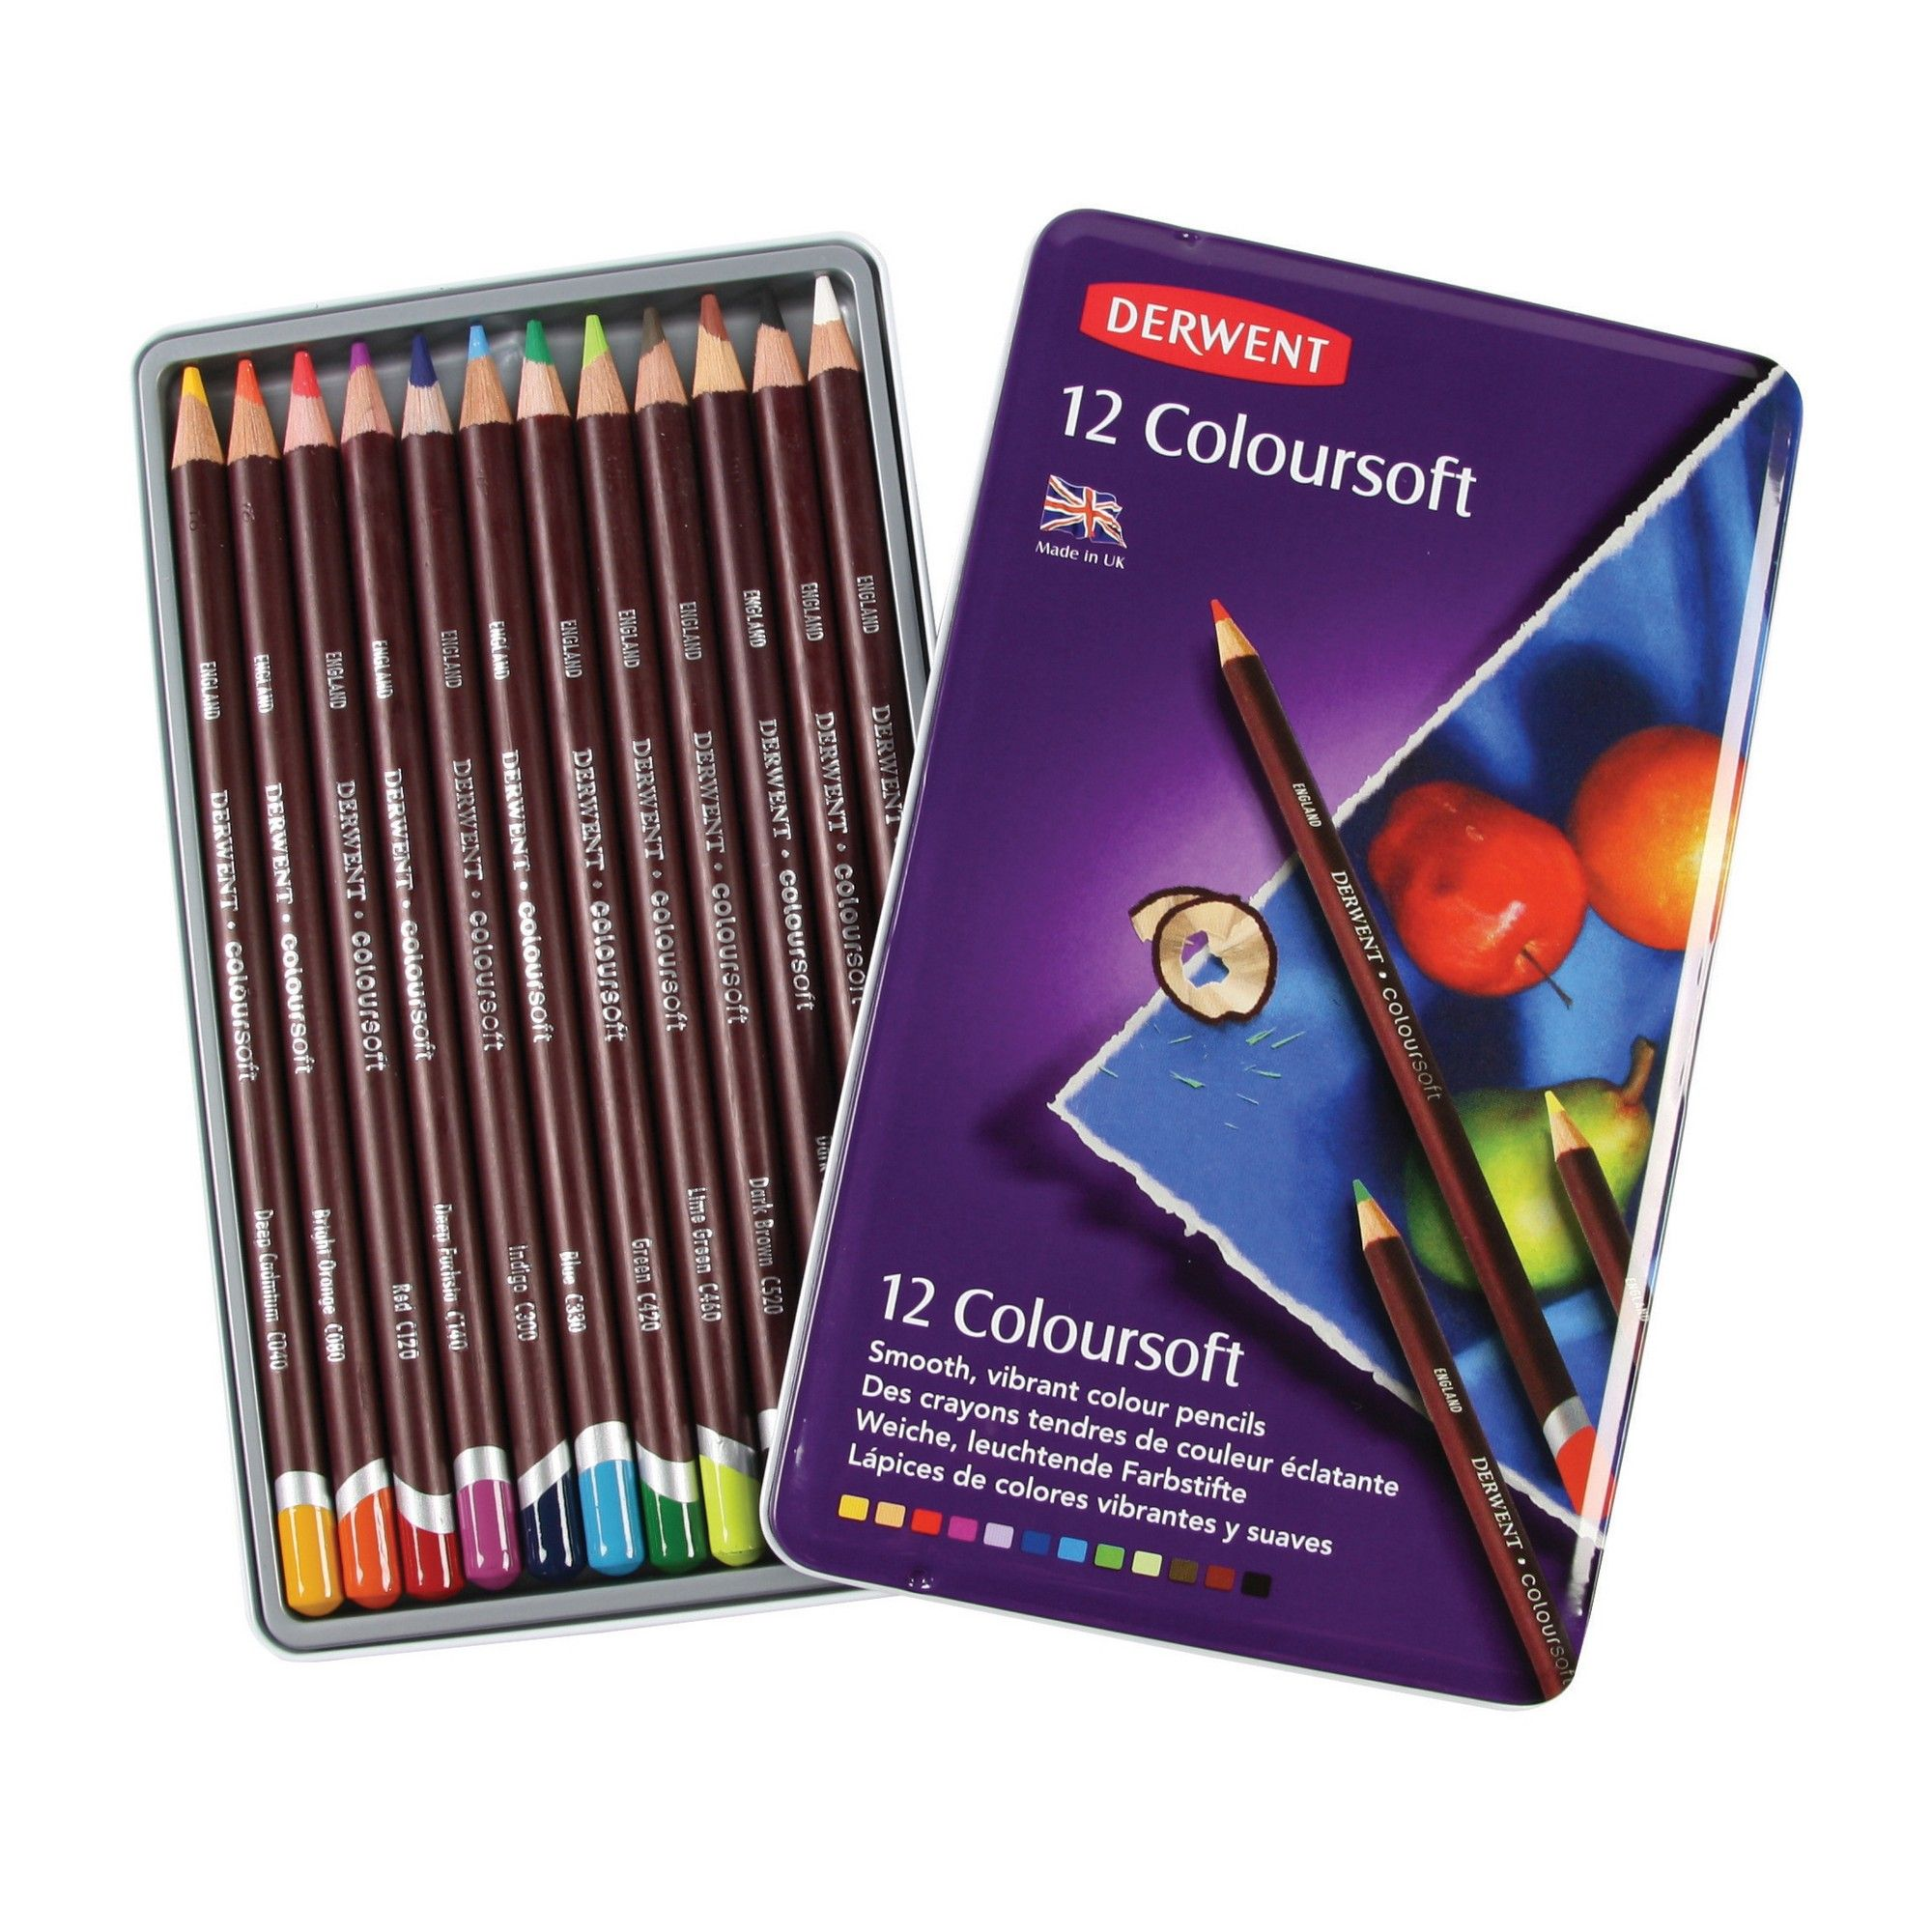 Colored Pencil Set Derwent Coloursoft 12ct Colored Pencils